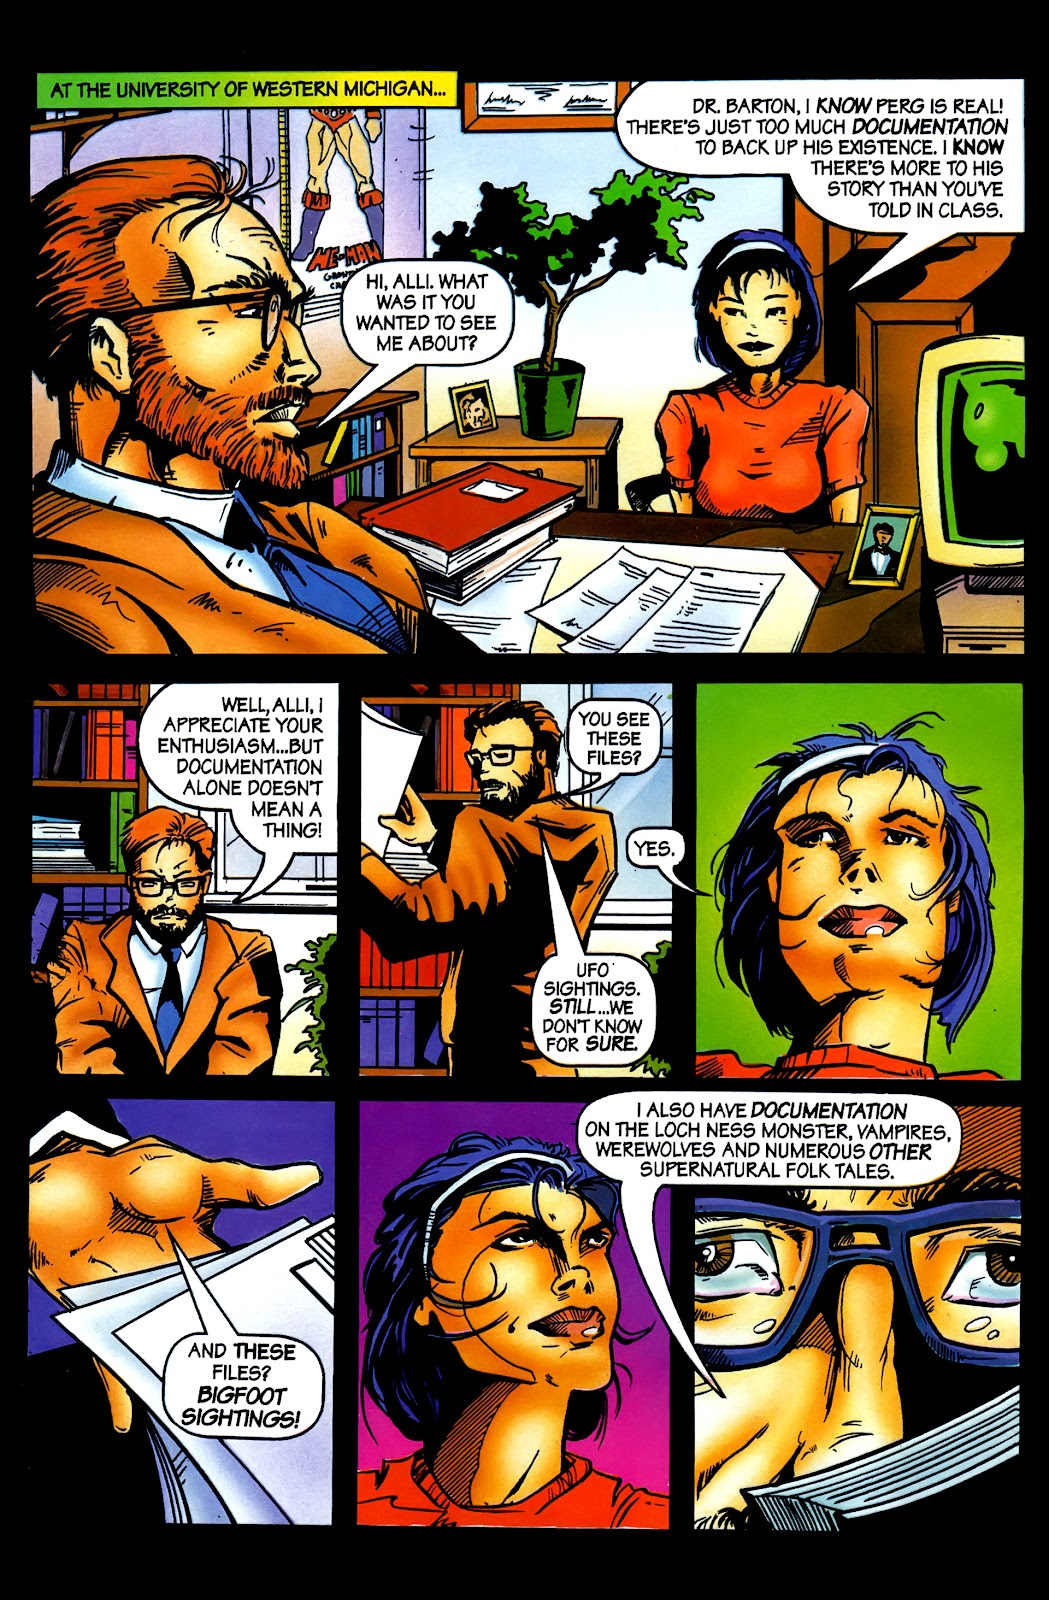 Read online Perg comic -  Issue #2 - 8